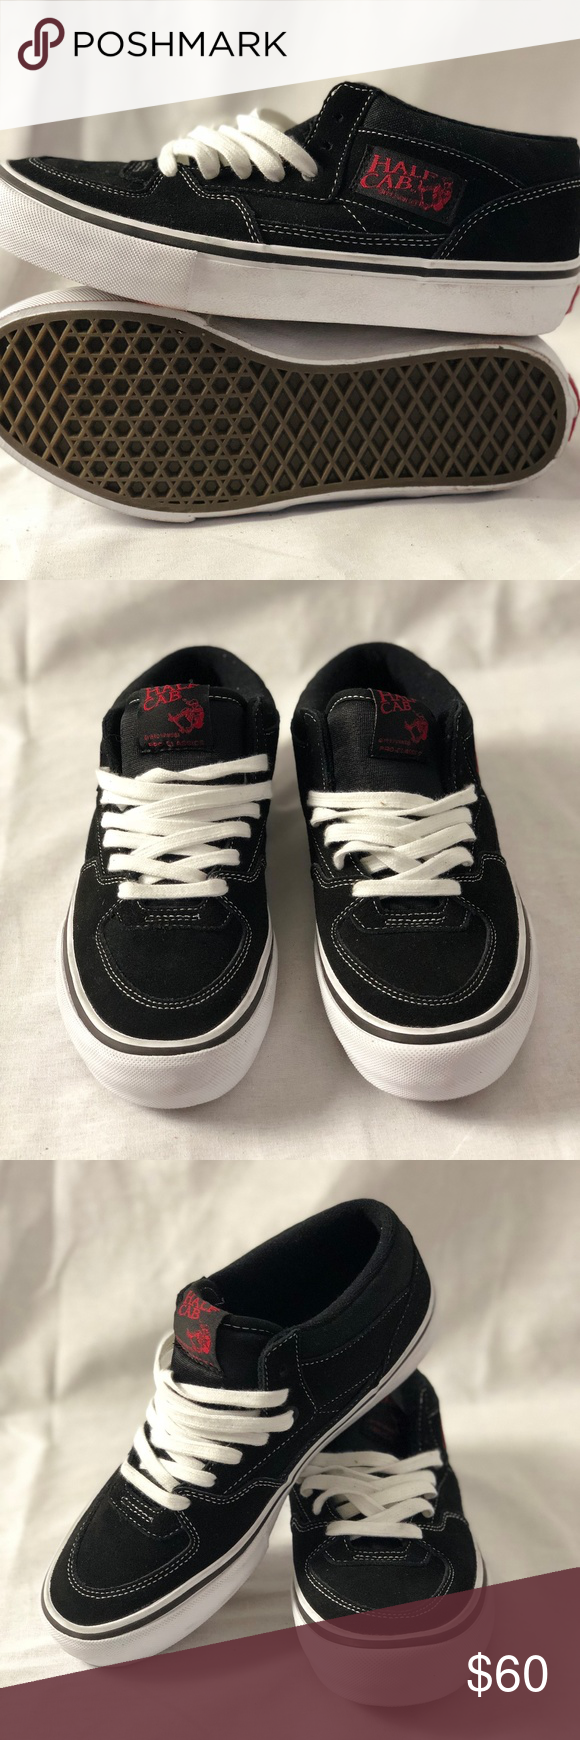 e6b837a53f Vans Mens Half Cab Pro Sneakers Black White Red Vans Mens Half Cab Pro  Sneakers Black White Red Men s 7.5 Condition  New without box. Size  7.5  Men s Offers ...